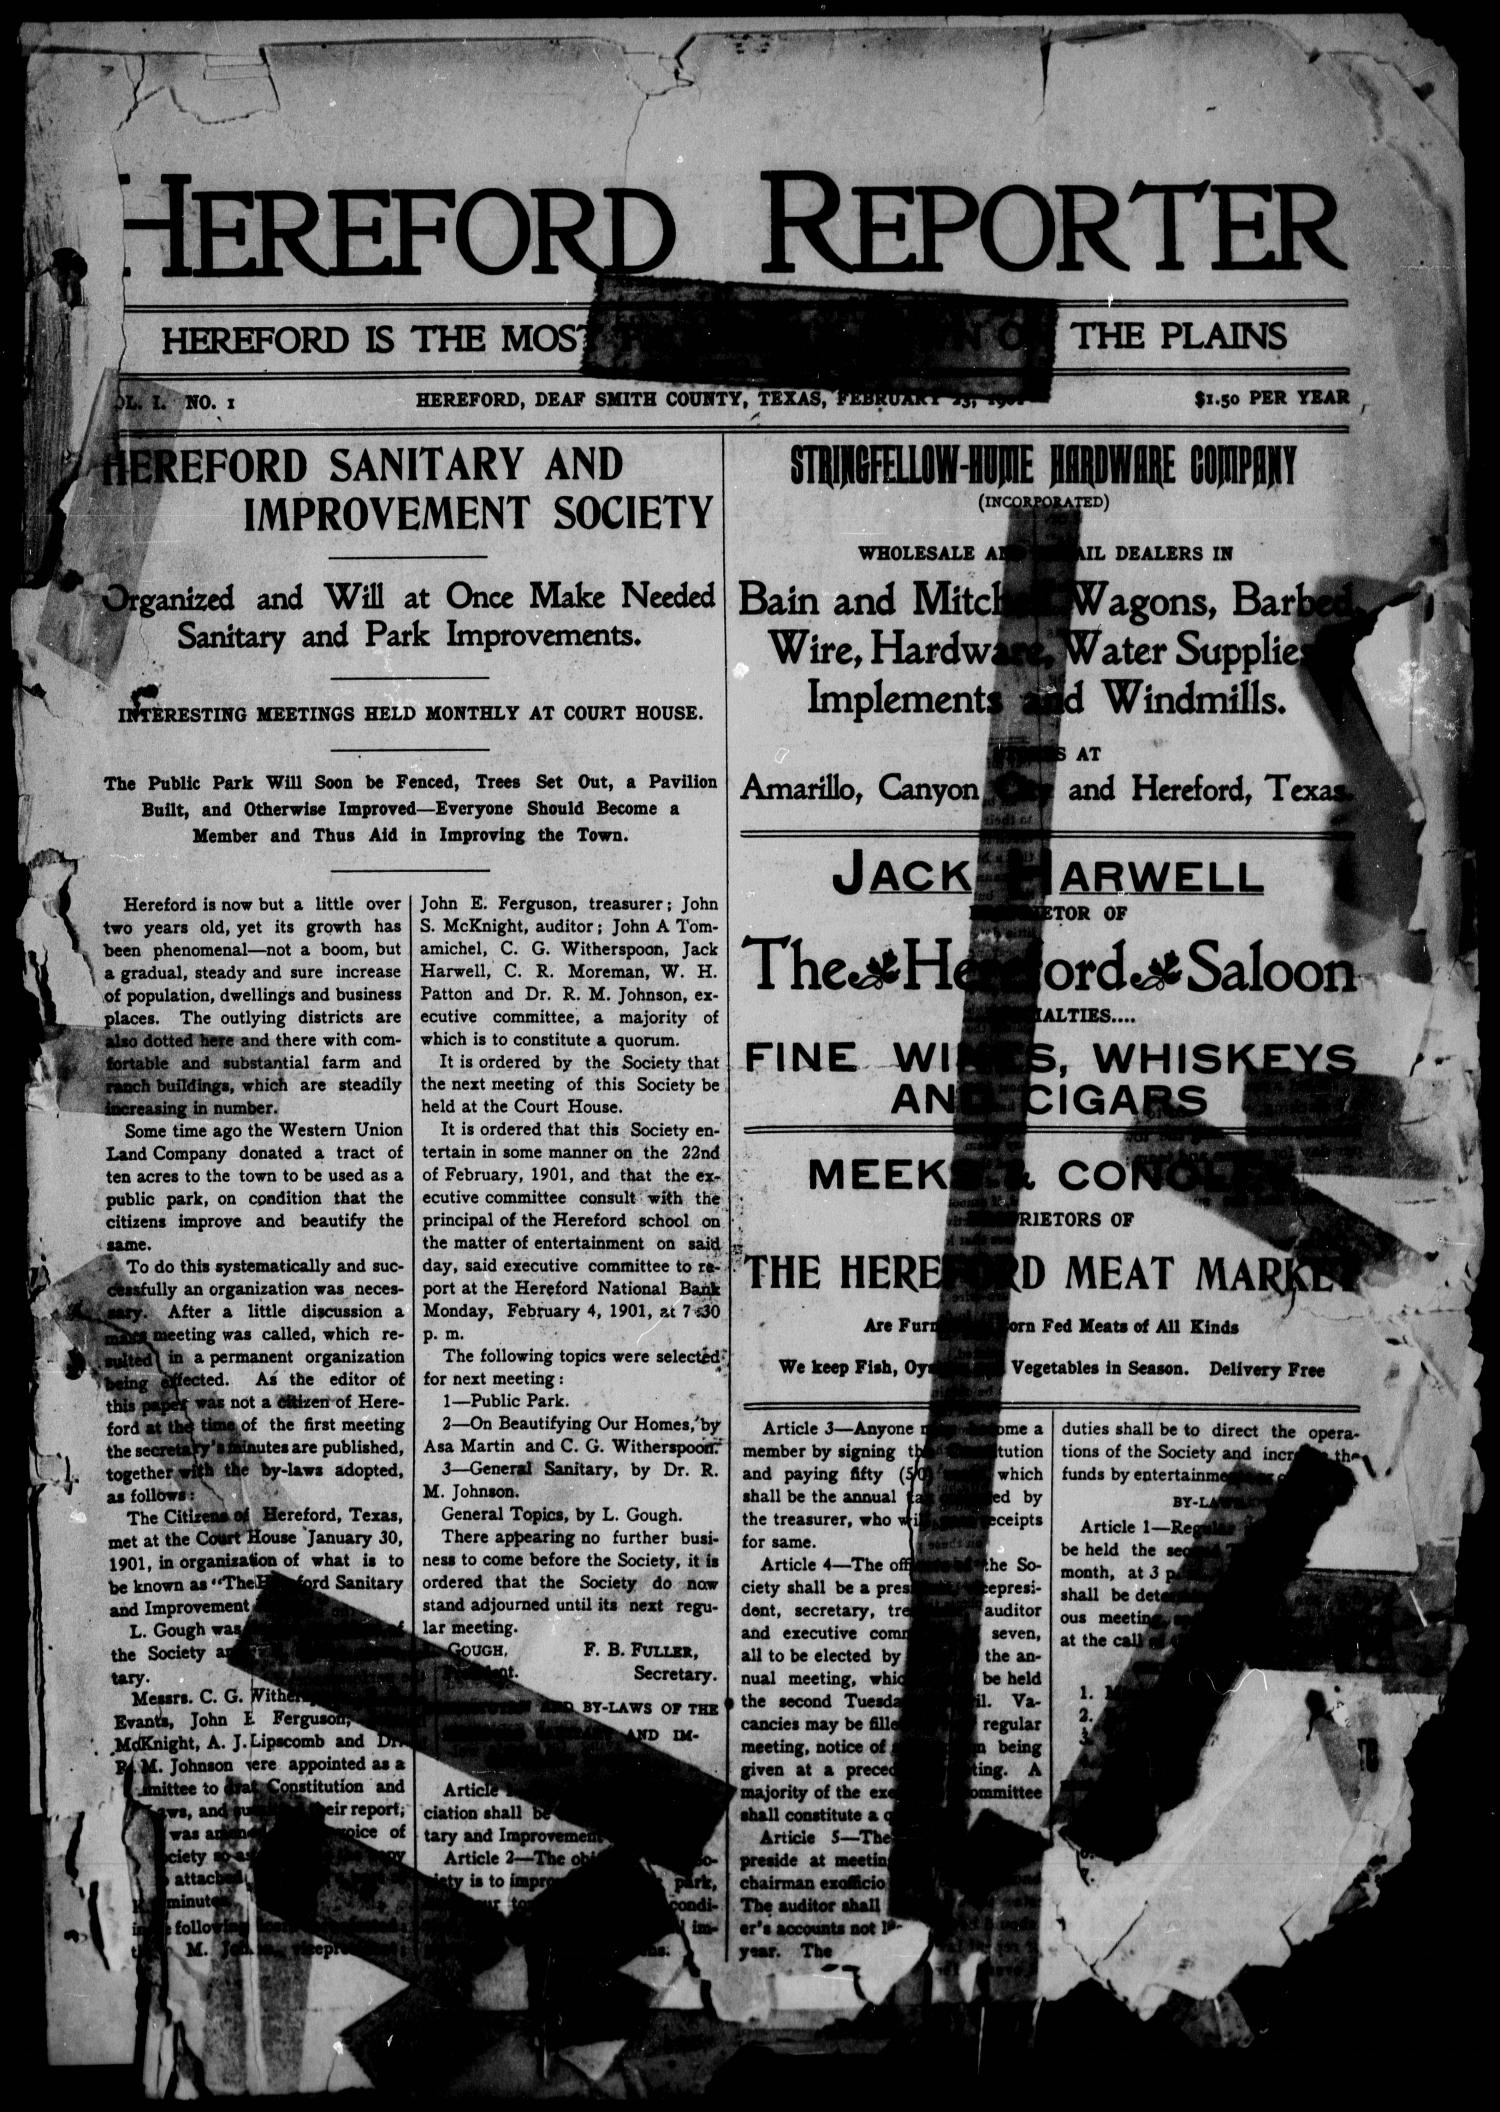 Hereford Reporter (Hereford, Tex.), Vol. 1, No. 1, Ed. 1 Saturday, February 23, 1901                                                                                                      [Sequence #]: 1 of 7